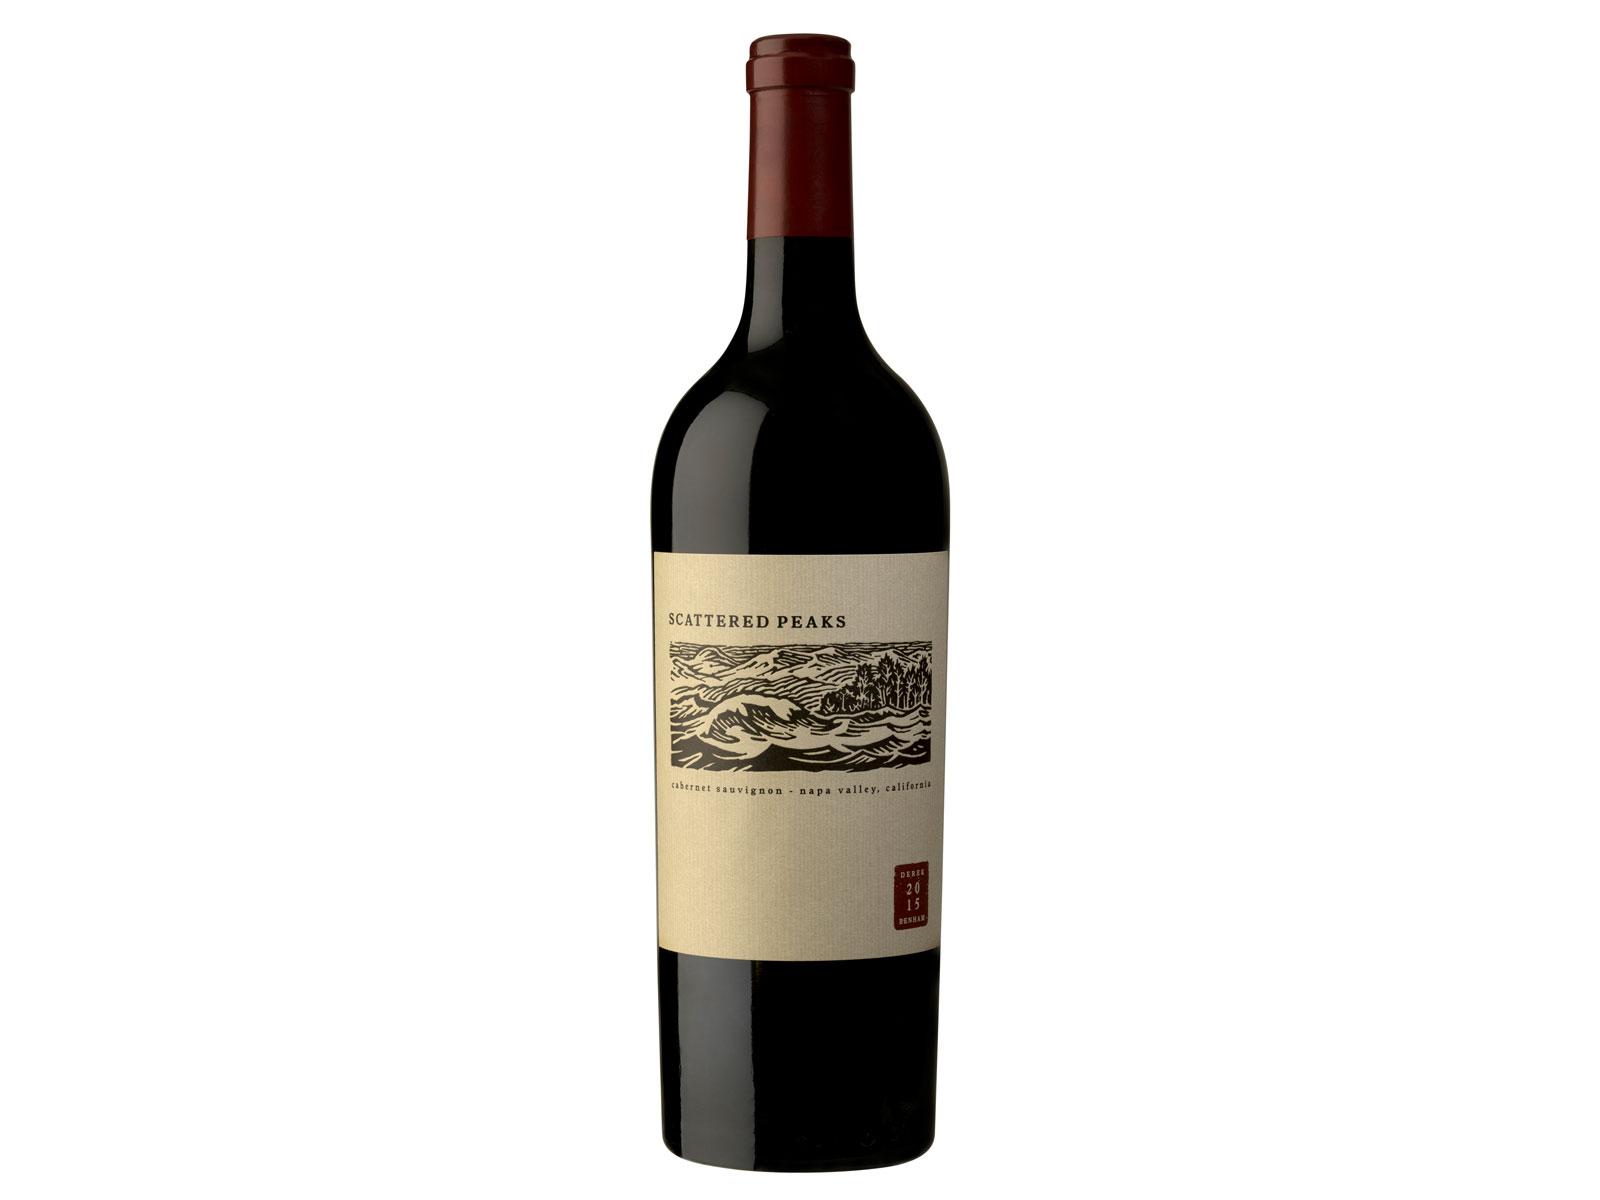 2015 Scattered Peaks Cabernet Sauvignon Napa Valley